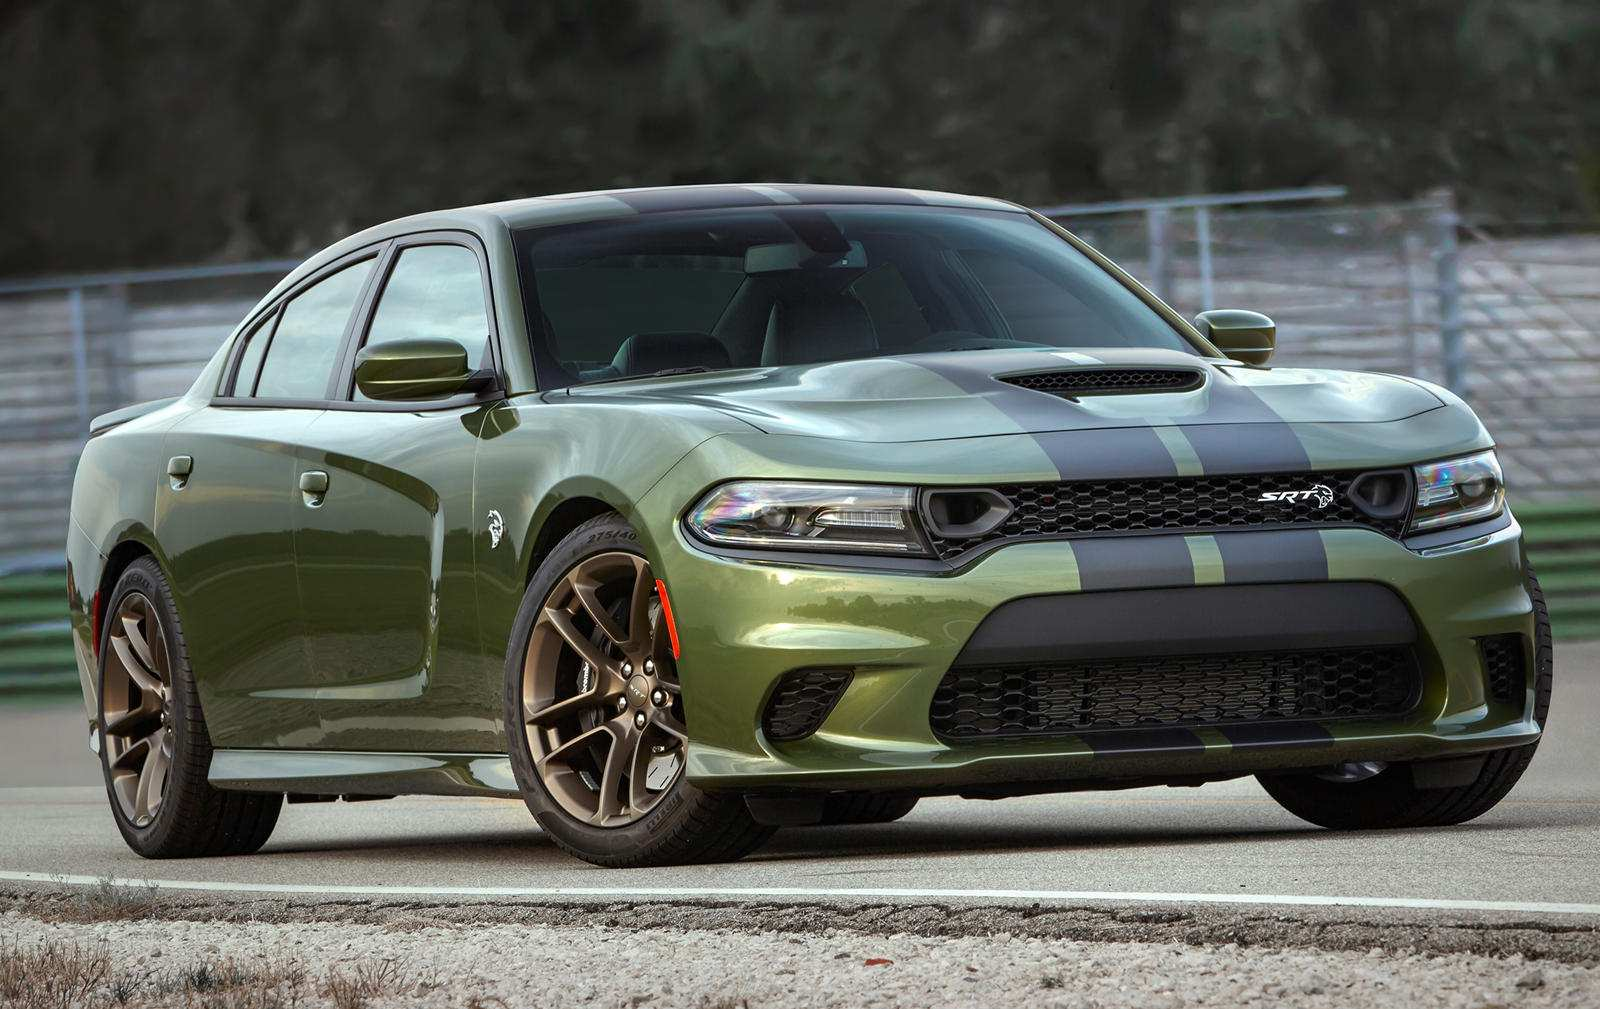 94 A 2020 Dodge Charger Scat Pack Redesign